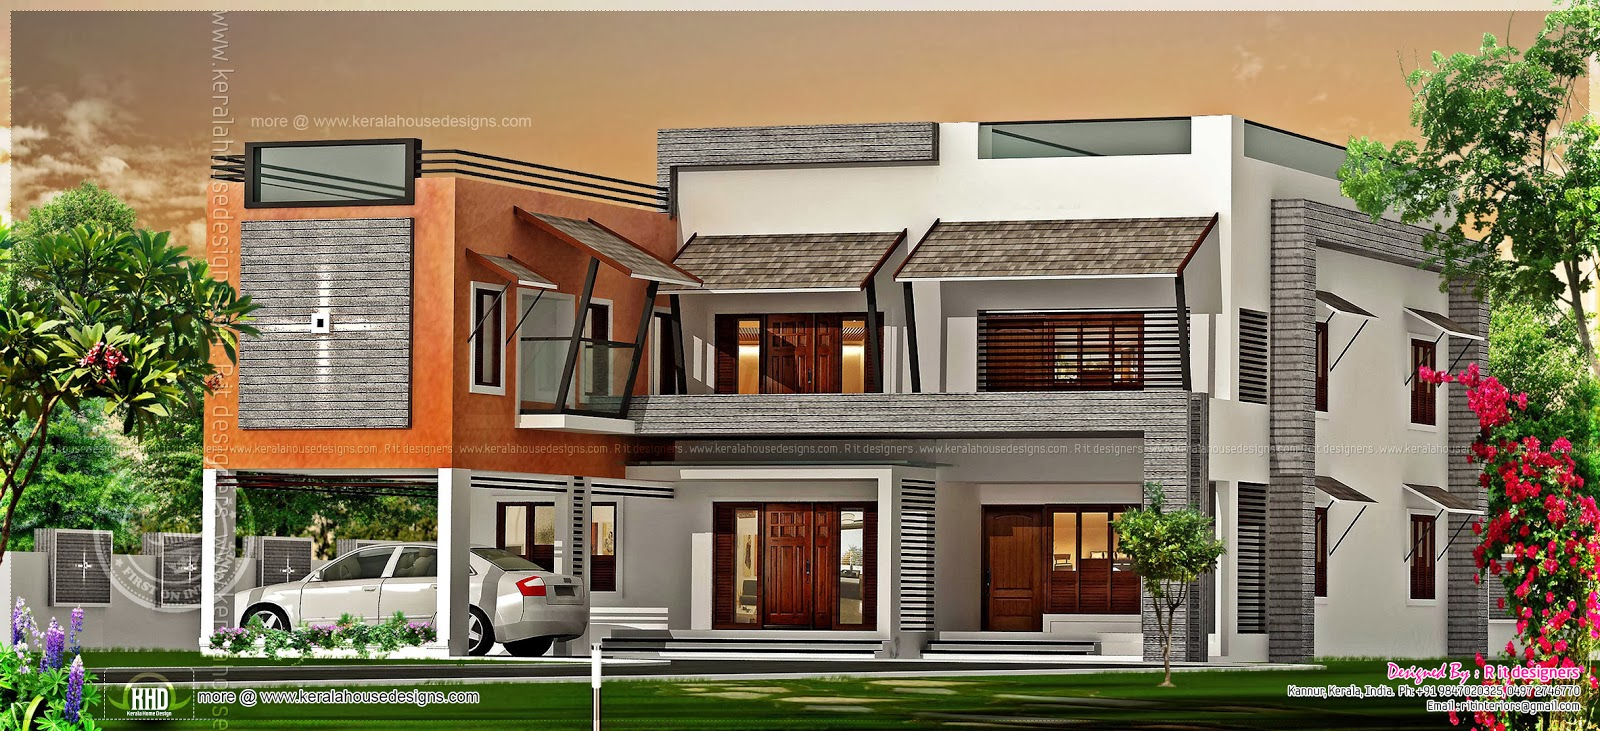 Tile roof house in kerala joy studio design gallery for Kerala home design flat roof elevation